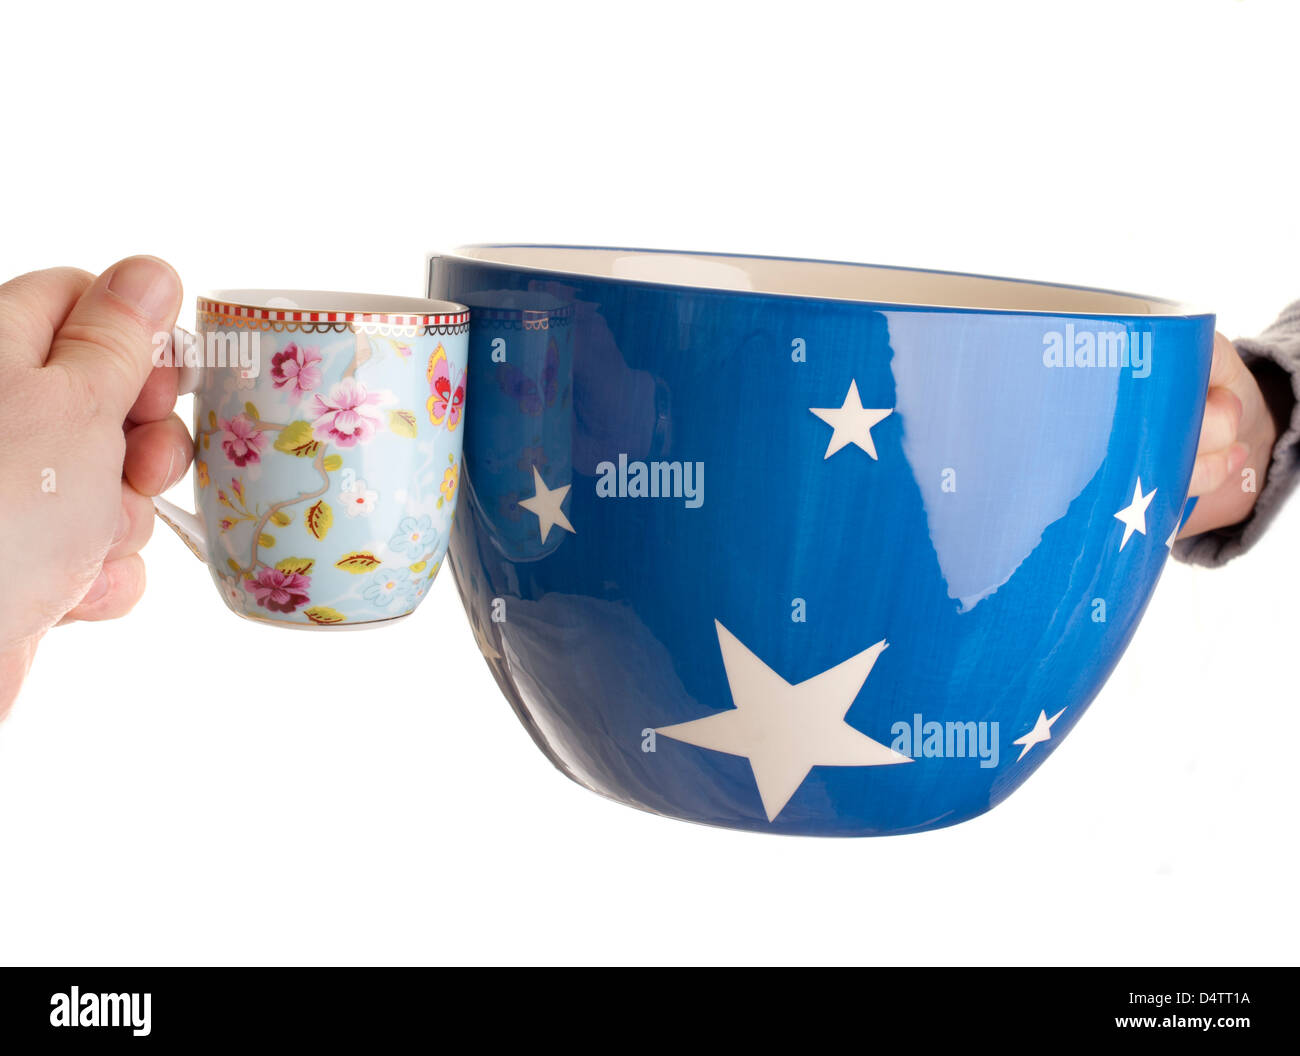 Two cups large and small cheers - Stock Image